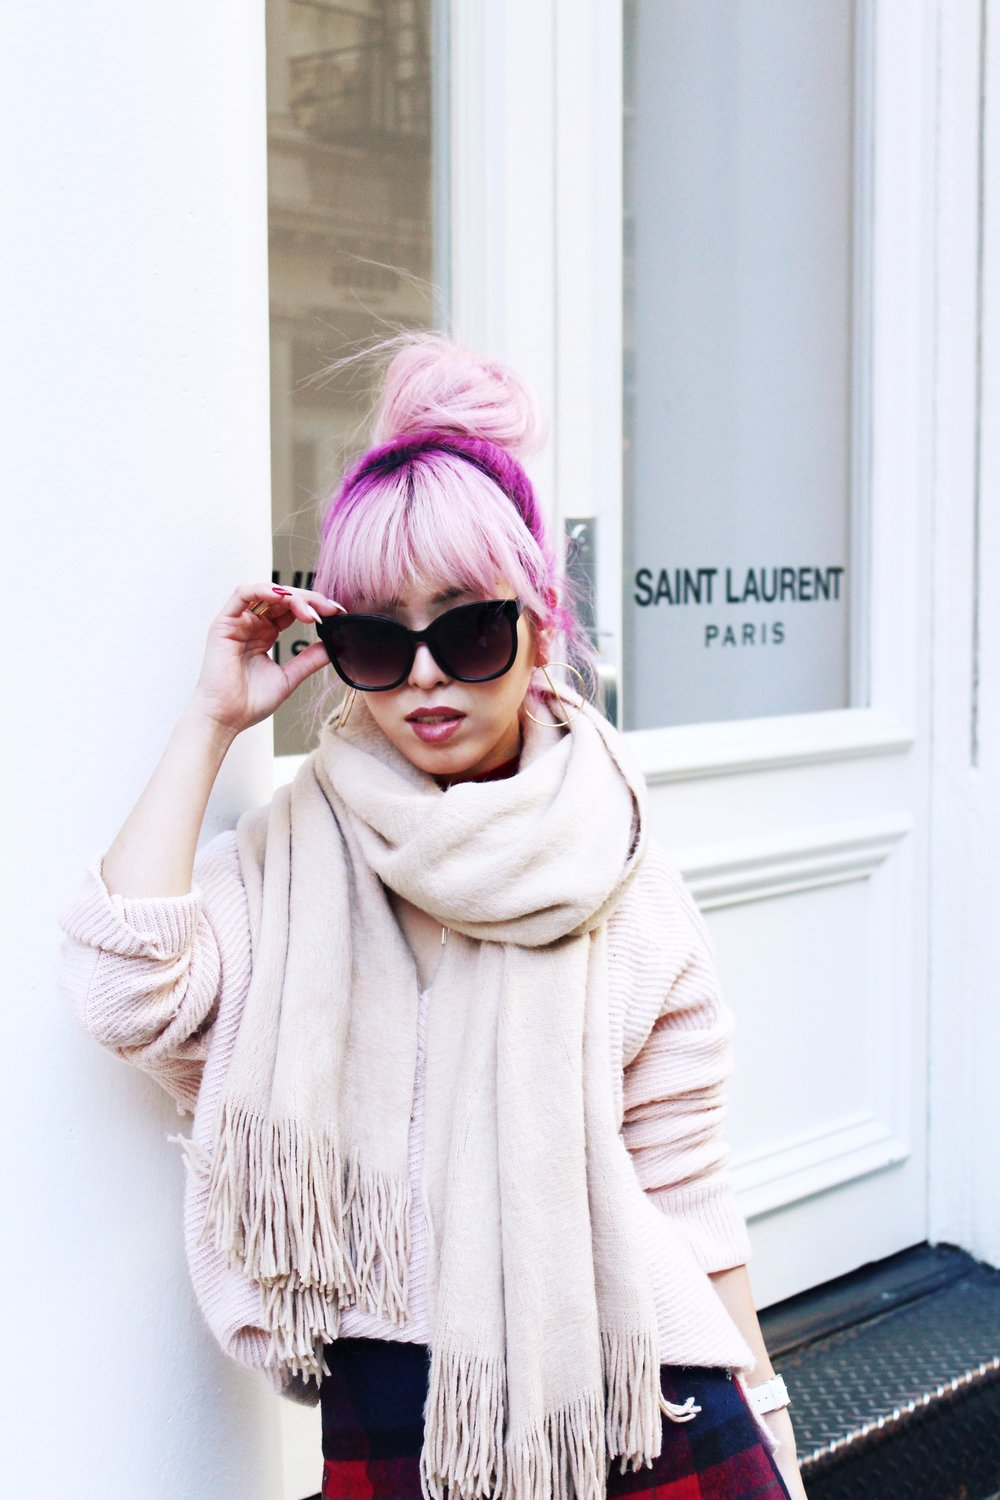 Urban Outfitters Cat eye sunglasses-Zara Blush Sweater-H&M scarf-Plaid Mini Skirt-ASOS black mules-zara mini bag-Aika's Love Closet-Seattle Fashion blogger-Japanese-Pink hair-Colored Hair